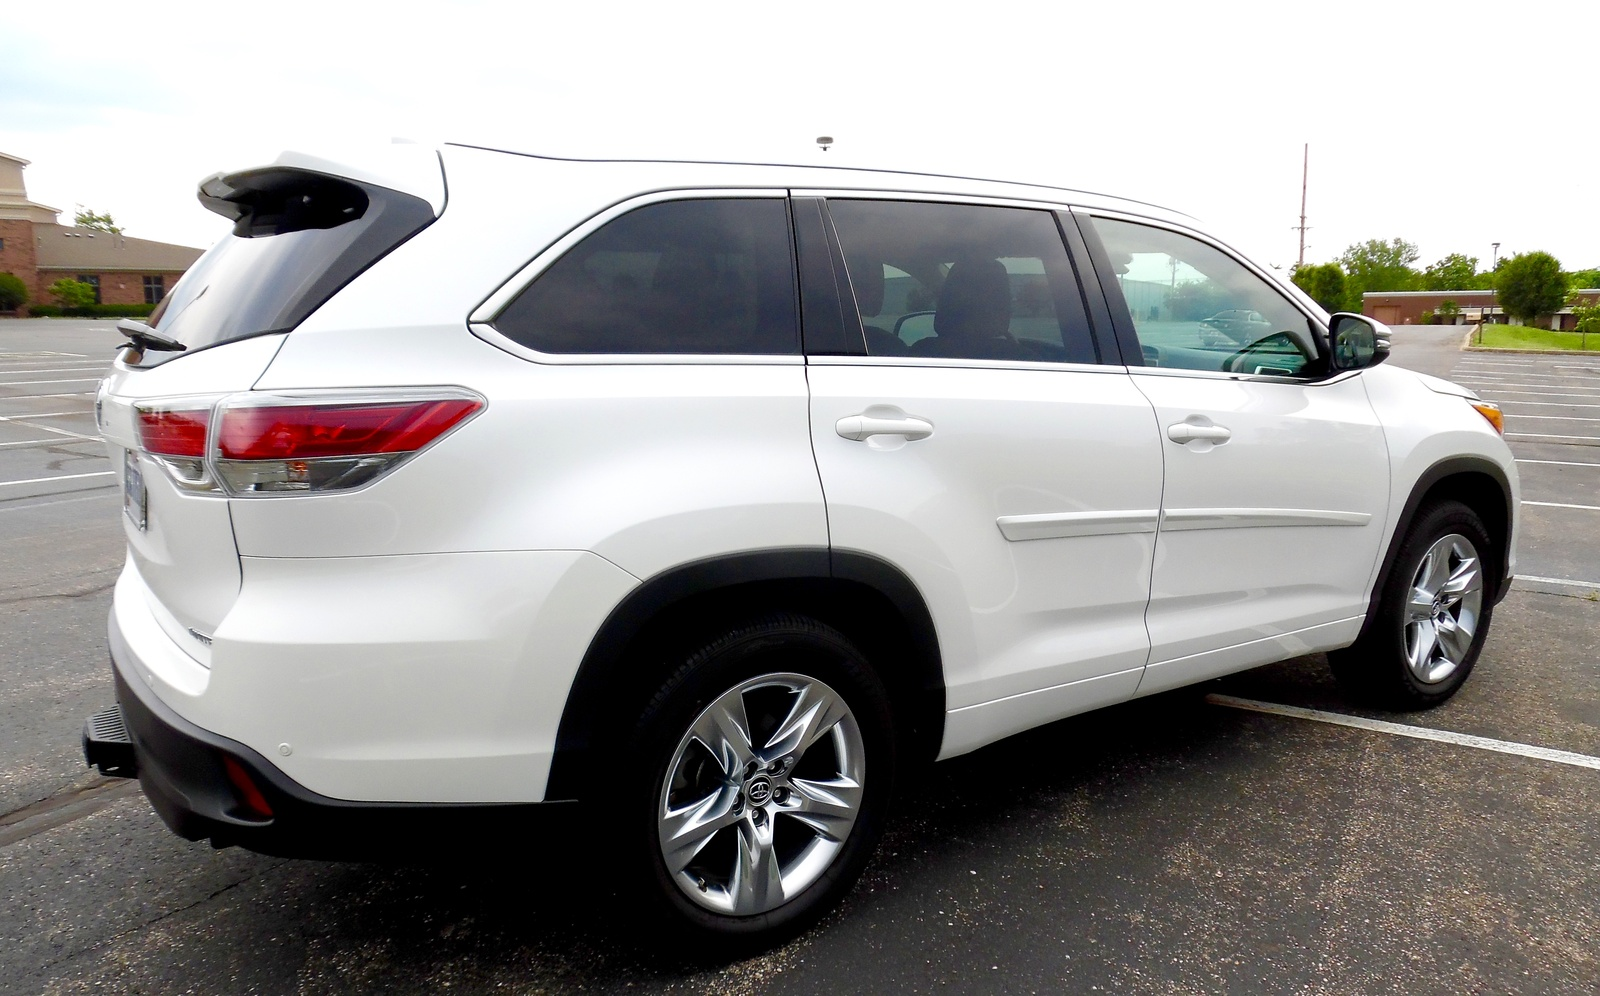 Dallas Toyota Dealers >> 2016 Toyota Highlander for Sale in your area - CarGurus